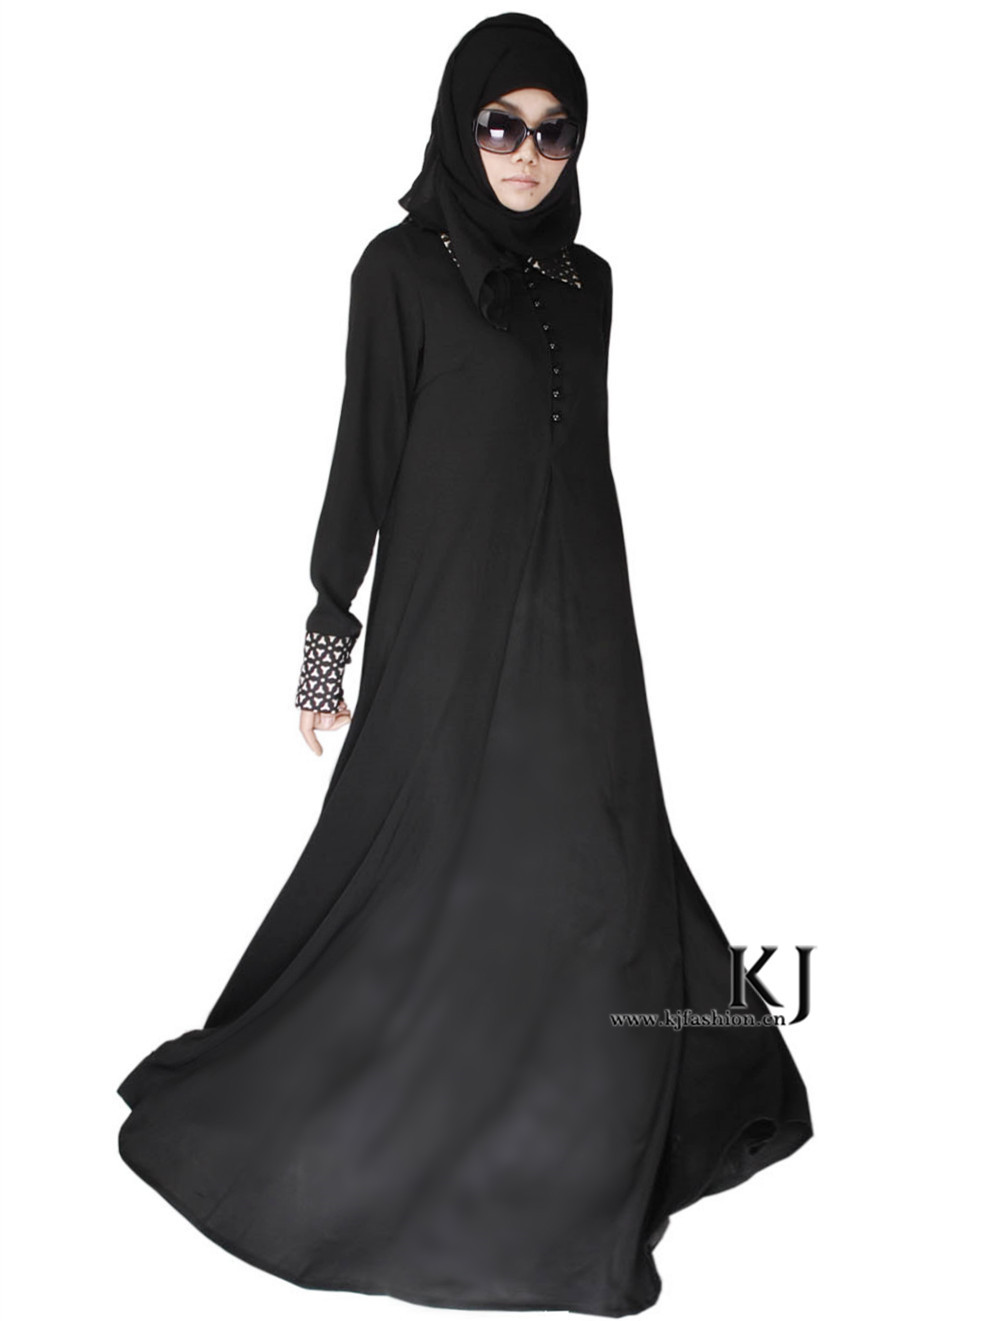 kyle muslim Kyle's best 100% free muslim dating site meet thousands of single muslims in kyle with mingle2's free muslim personal ads and chat rooms.